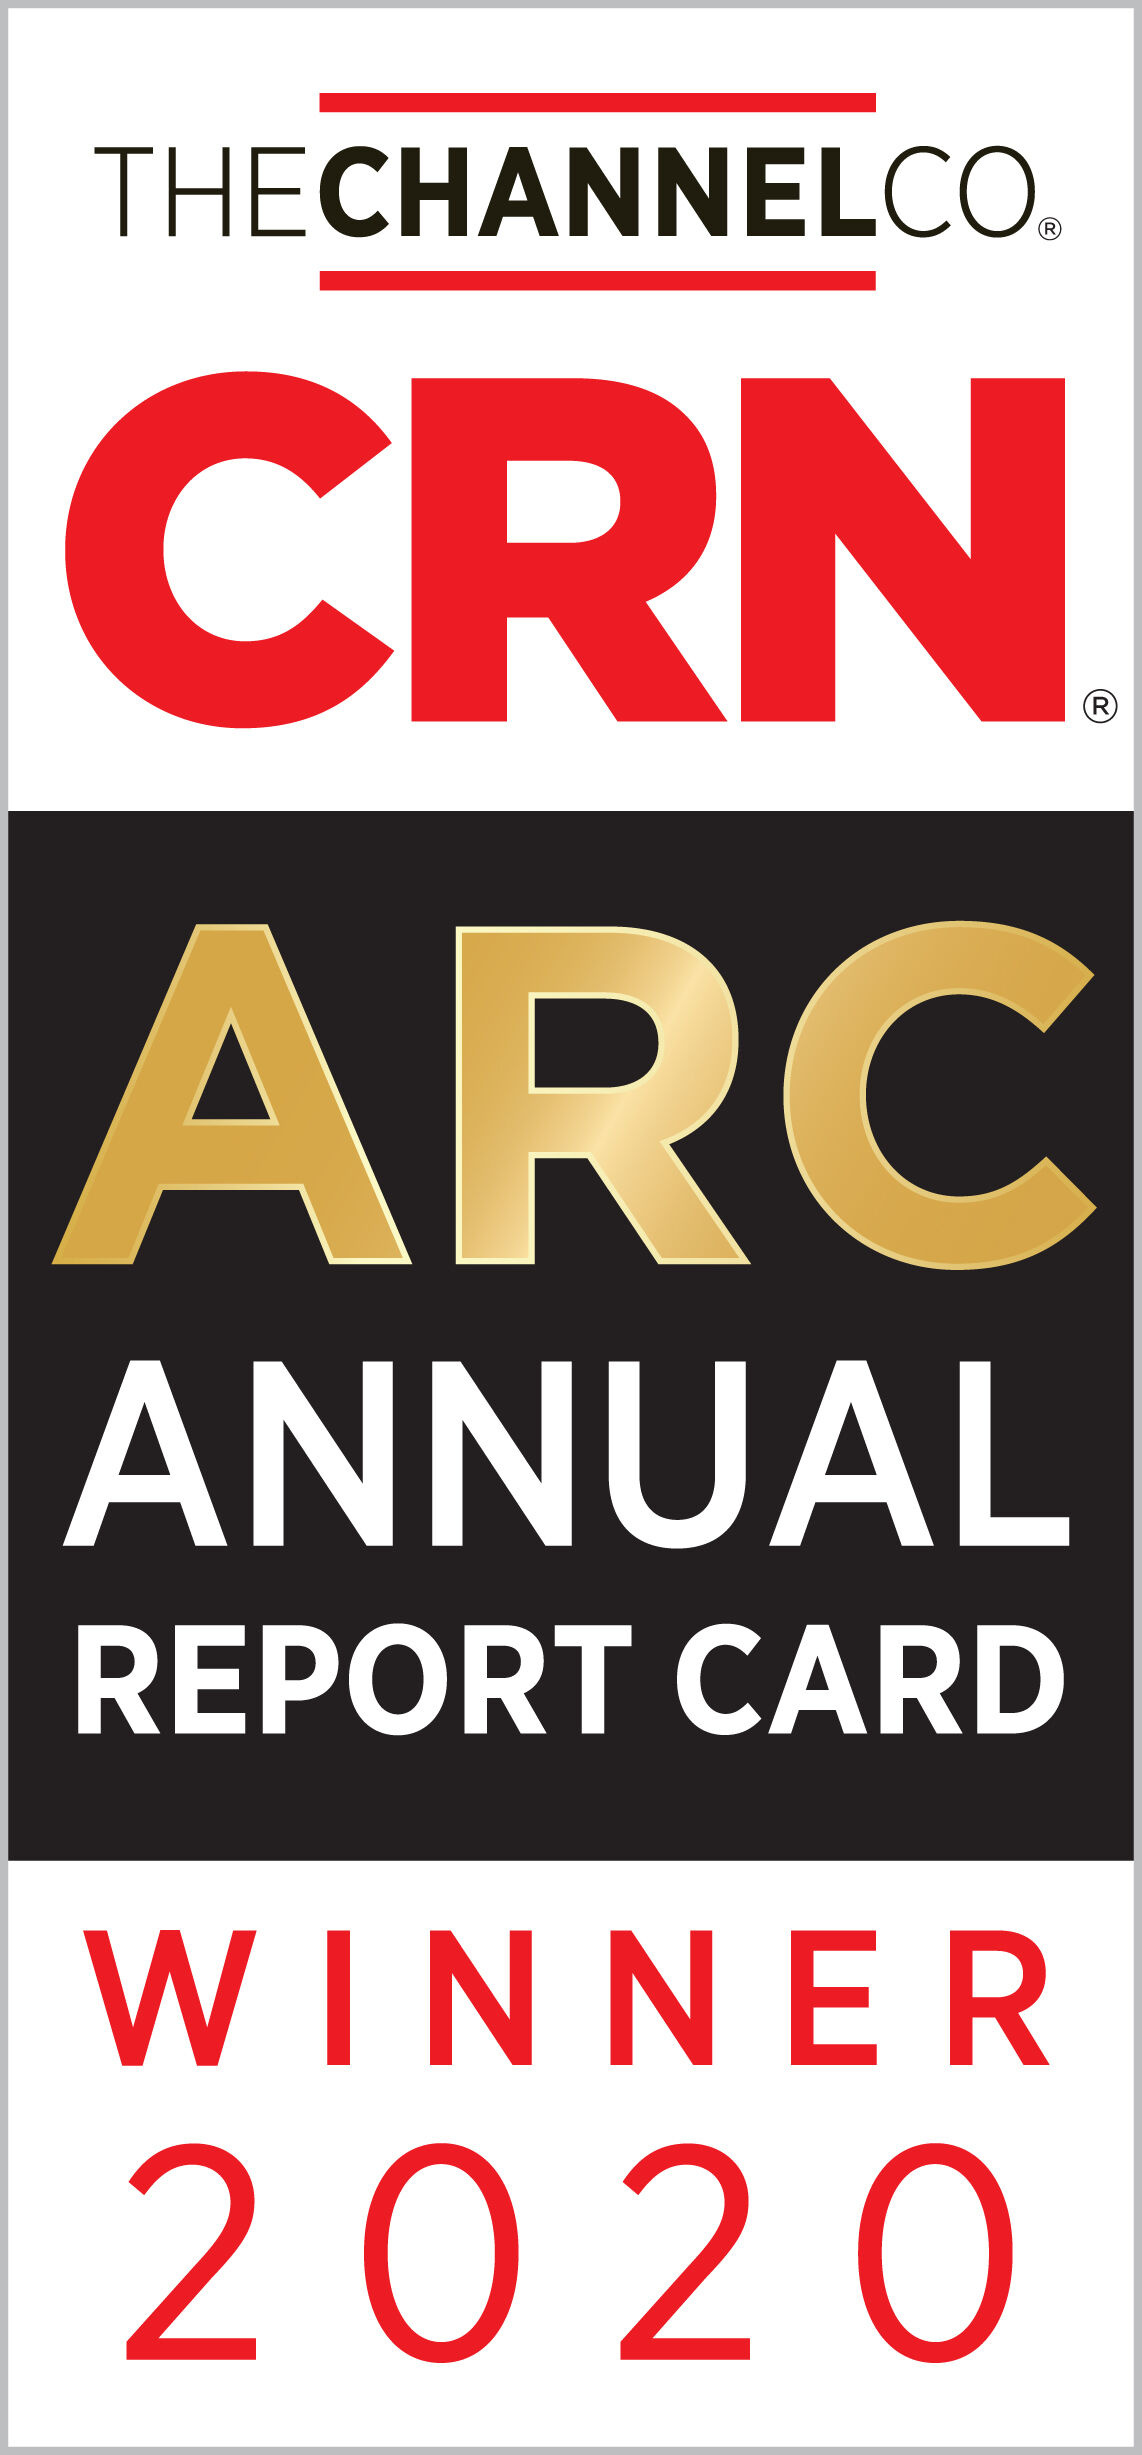 Veeam Ranks High on CRN's 2020 Annual Report Card